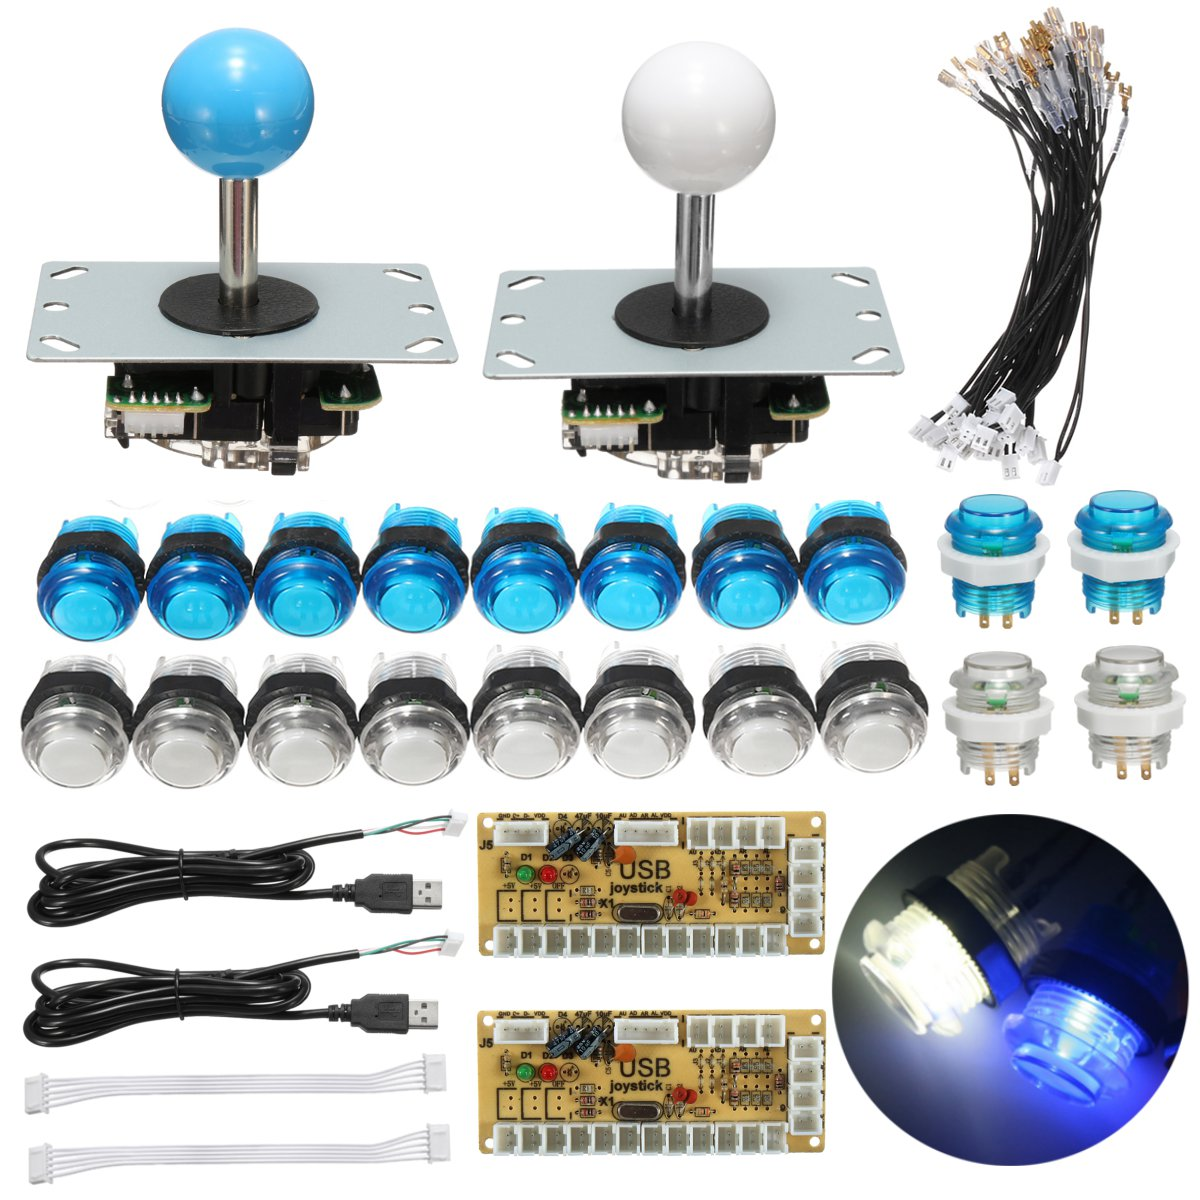 2 Players Delay Joystick Arcade DIY Kit Parts LED Push Button+Joystick+USB Encoder Controller For Mame For Raspberry Pi 3(China)